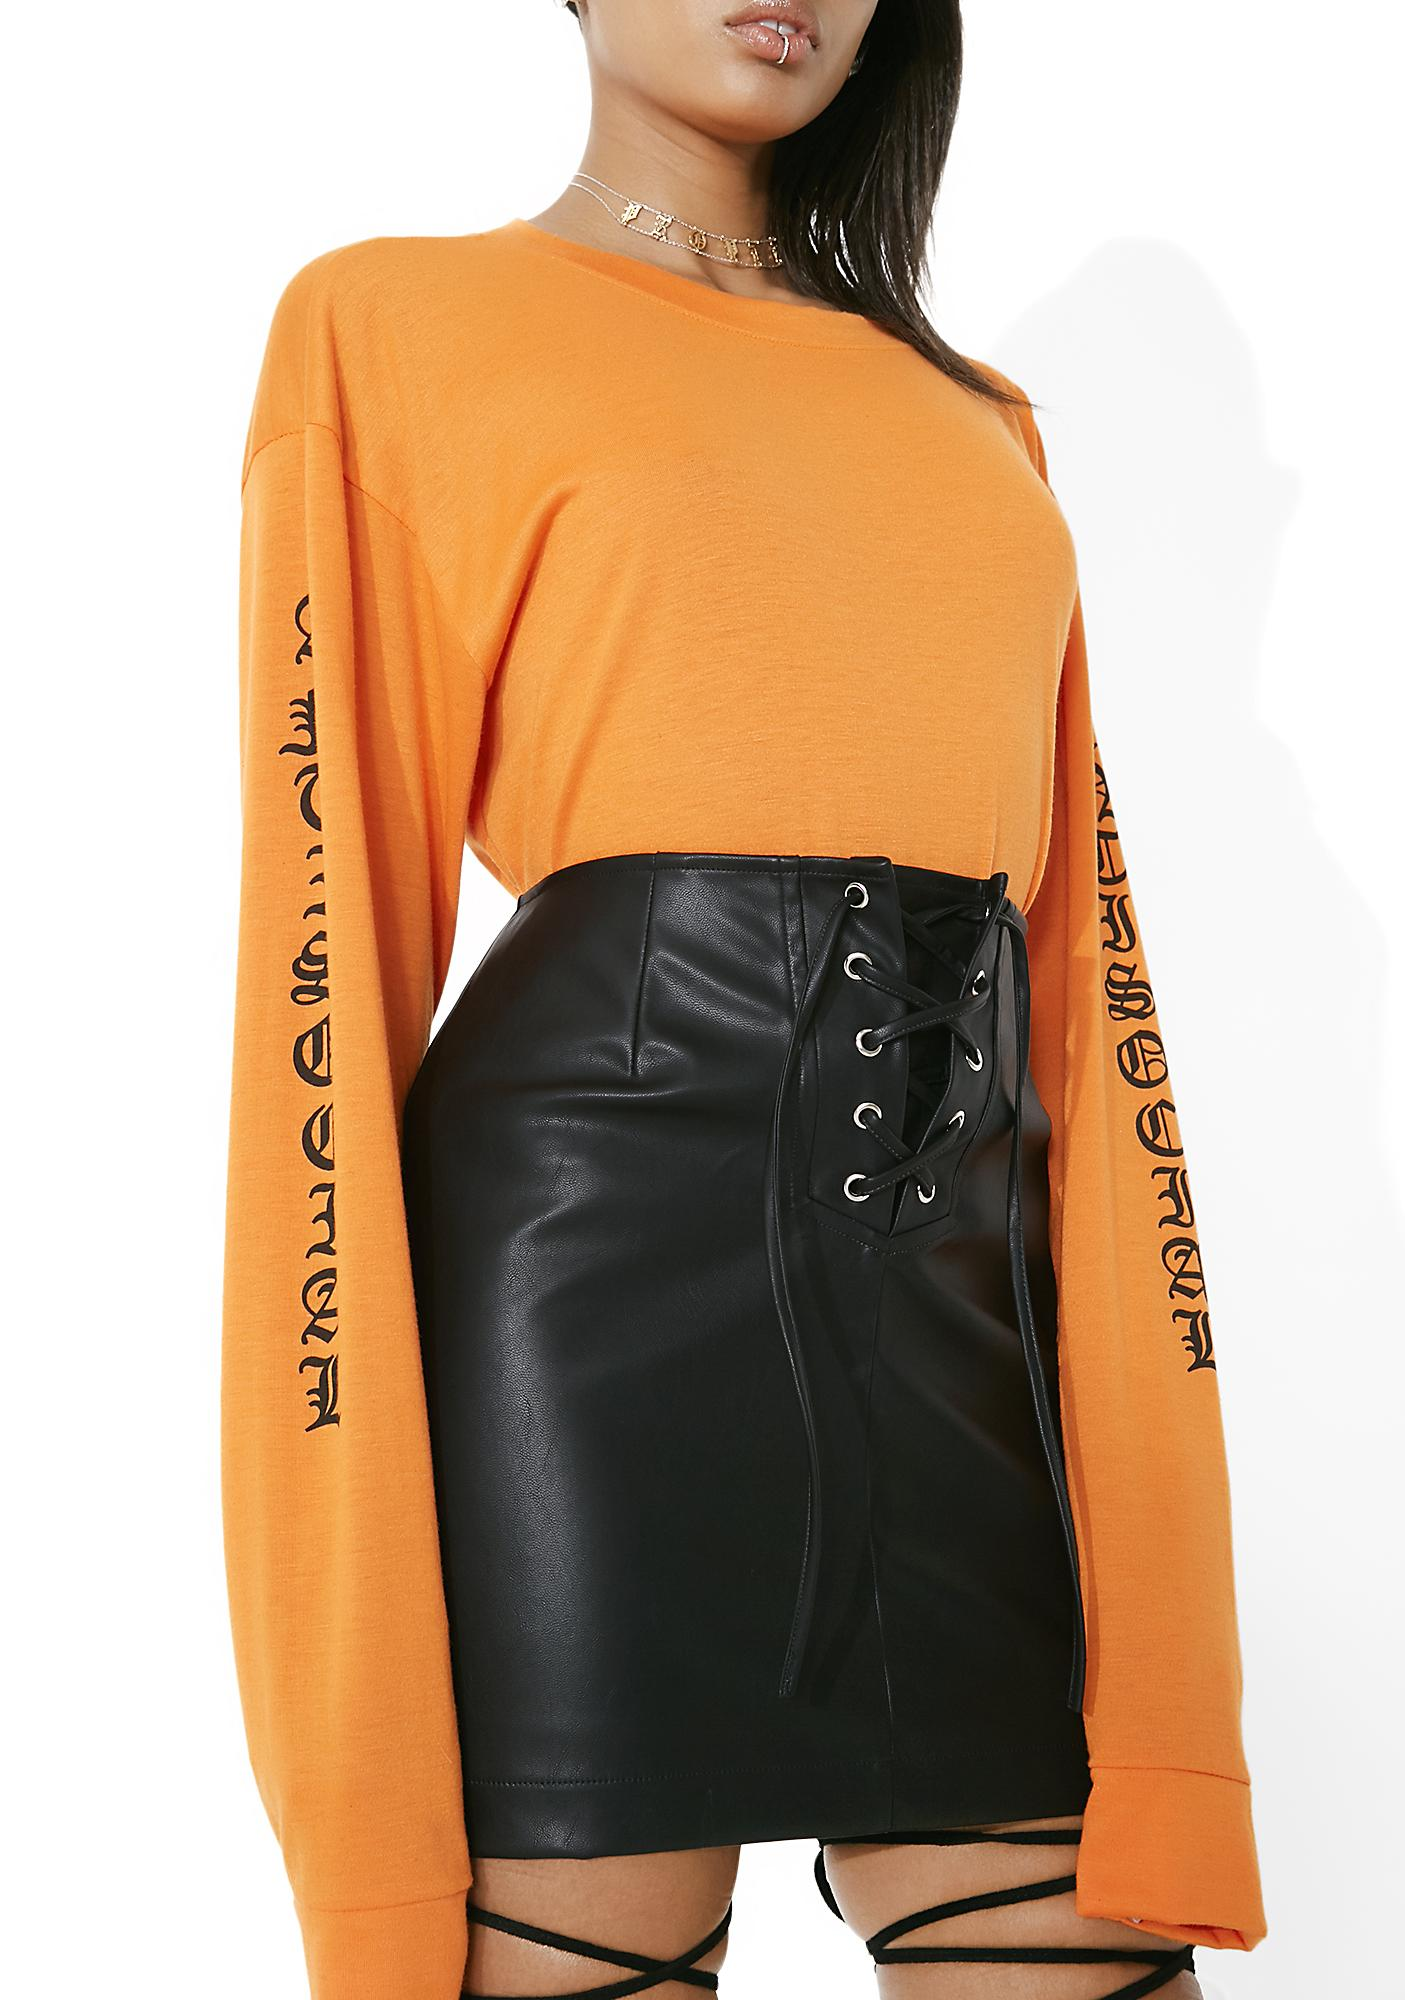 Try Me Lace-Up Skirt